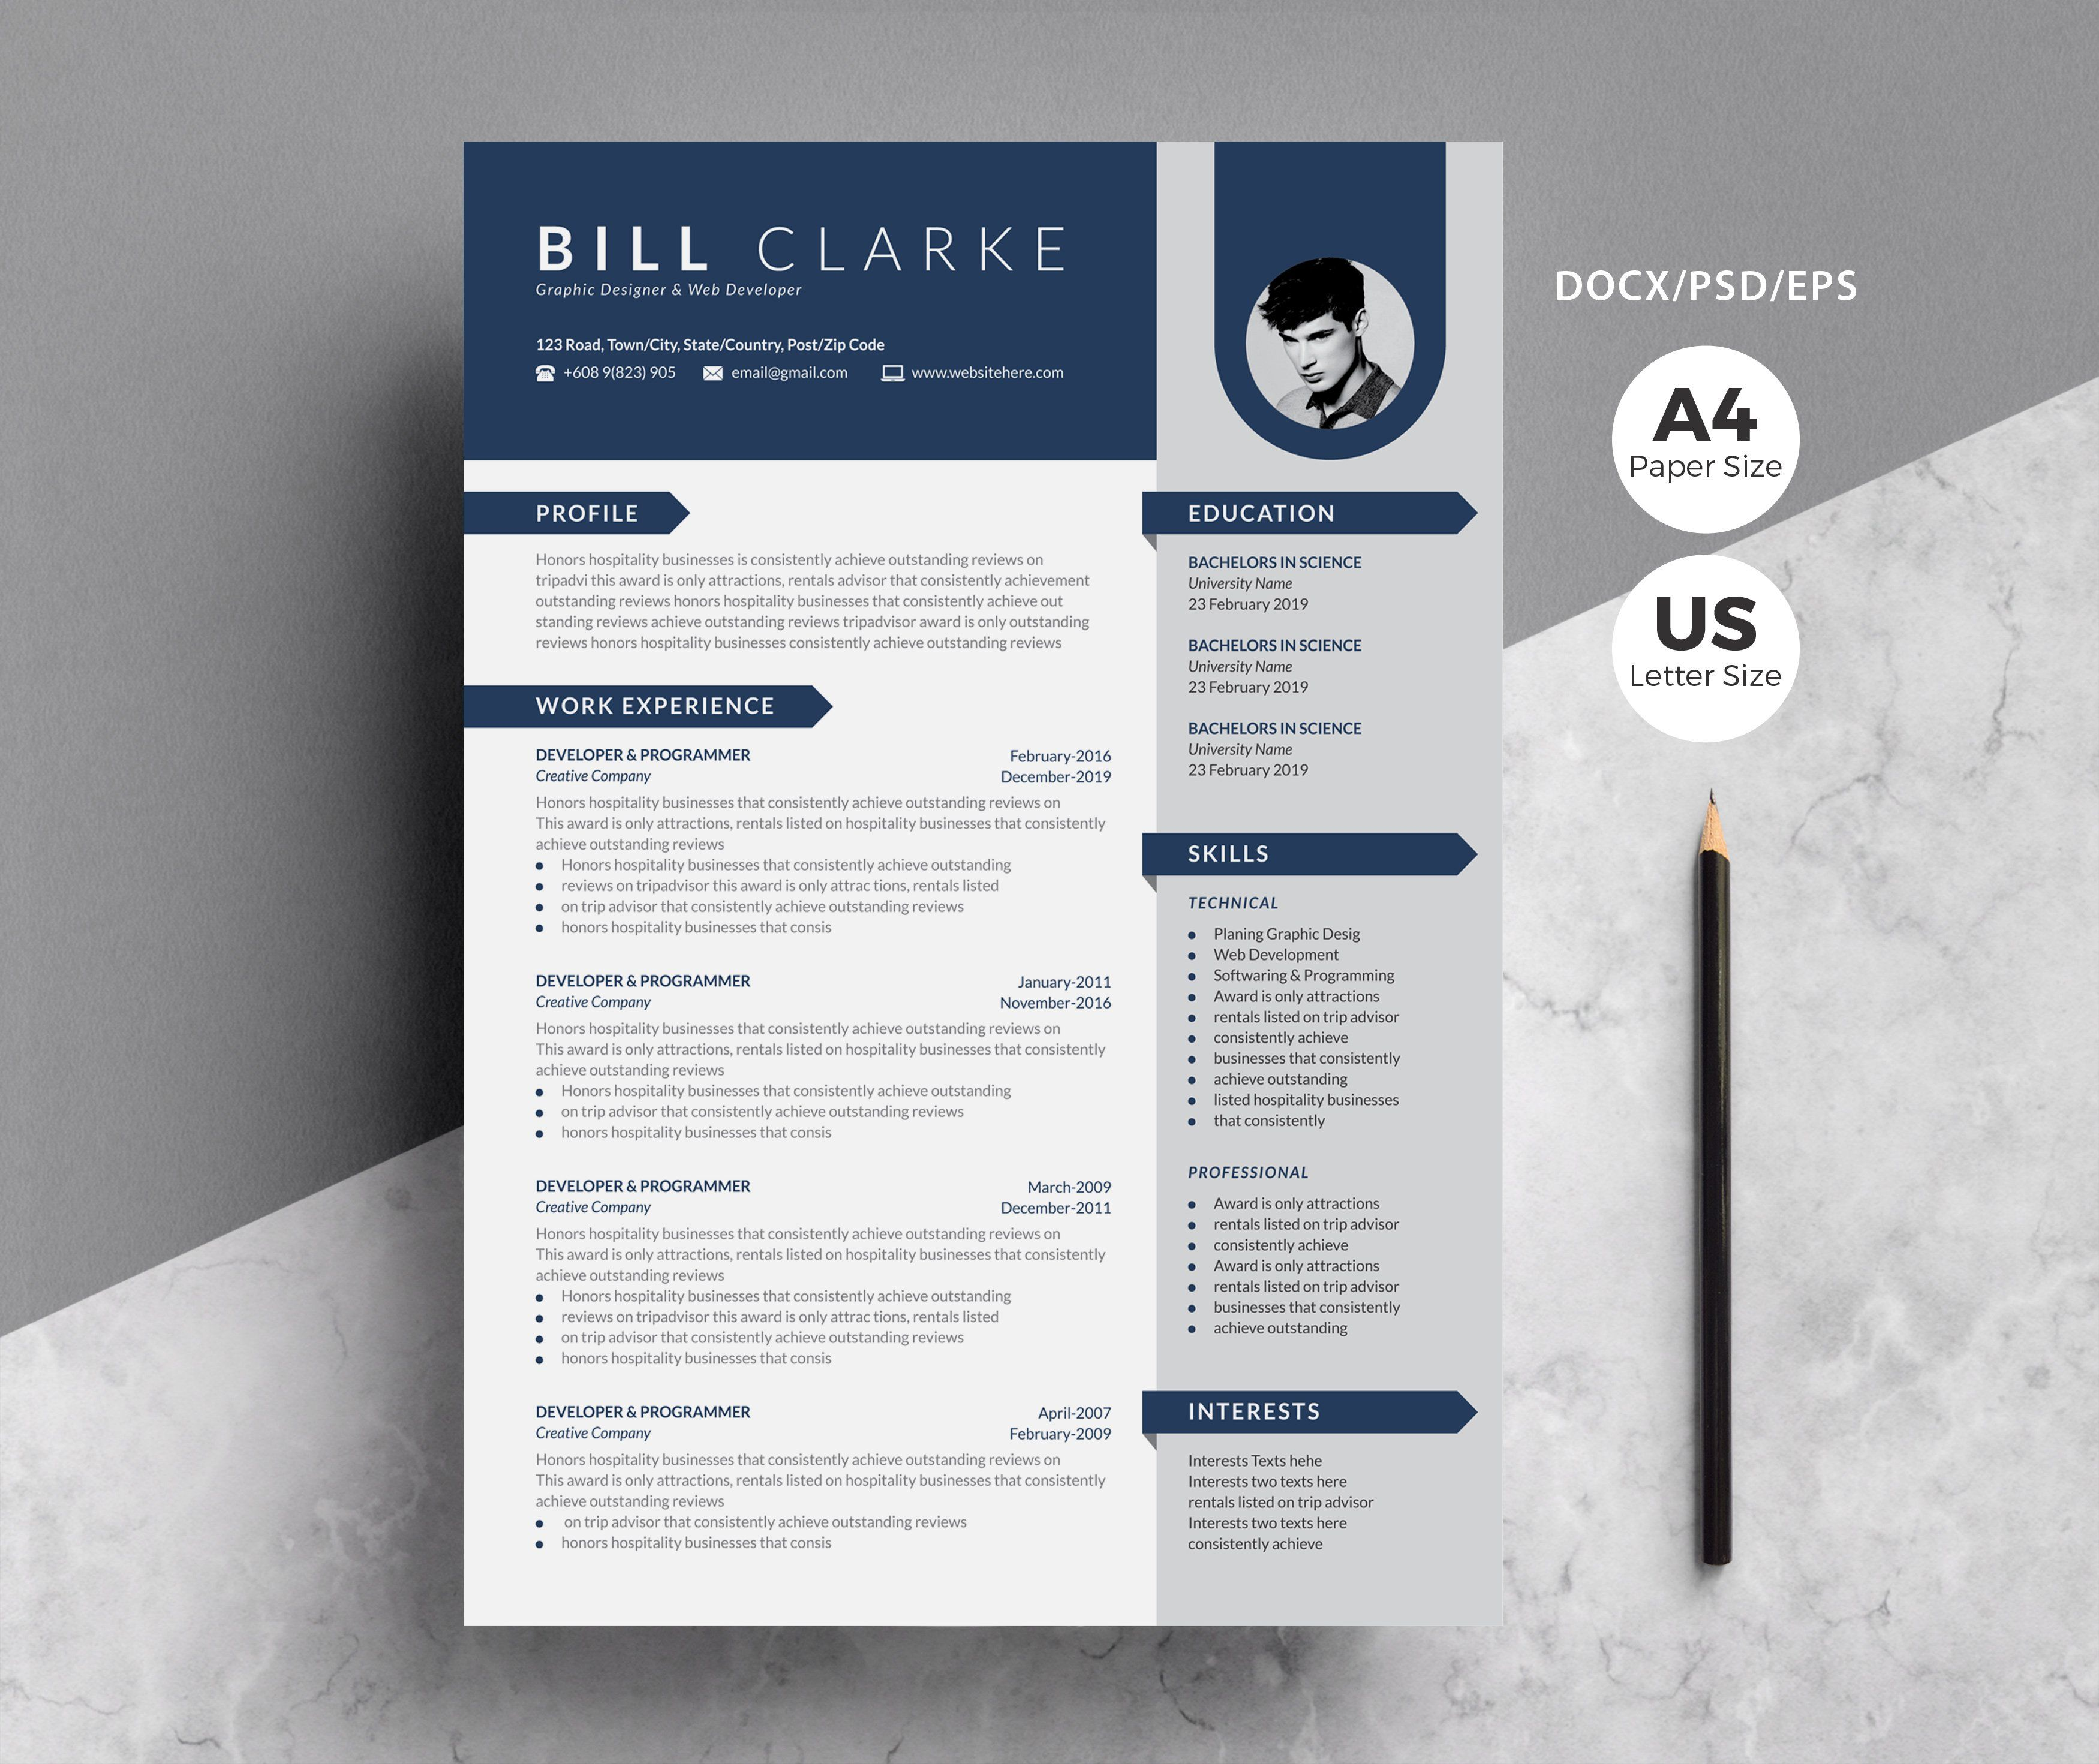 Word Resume Template Cover Letter By Whitegraphic On Creativemarket Graphicdesign Art Design Ill Cover Letter For Resume Lettering Cover Letter Template